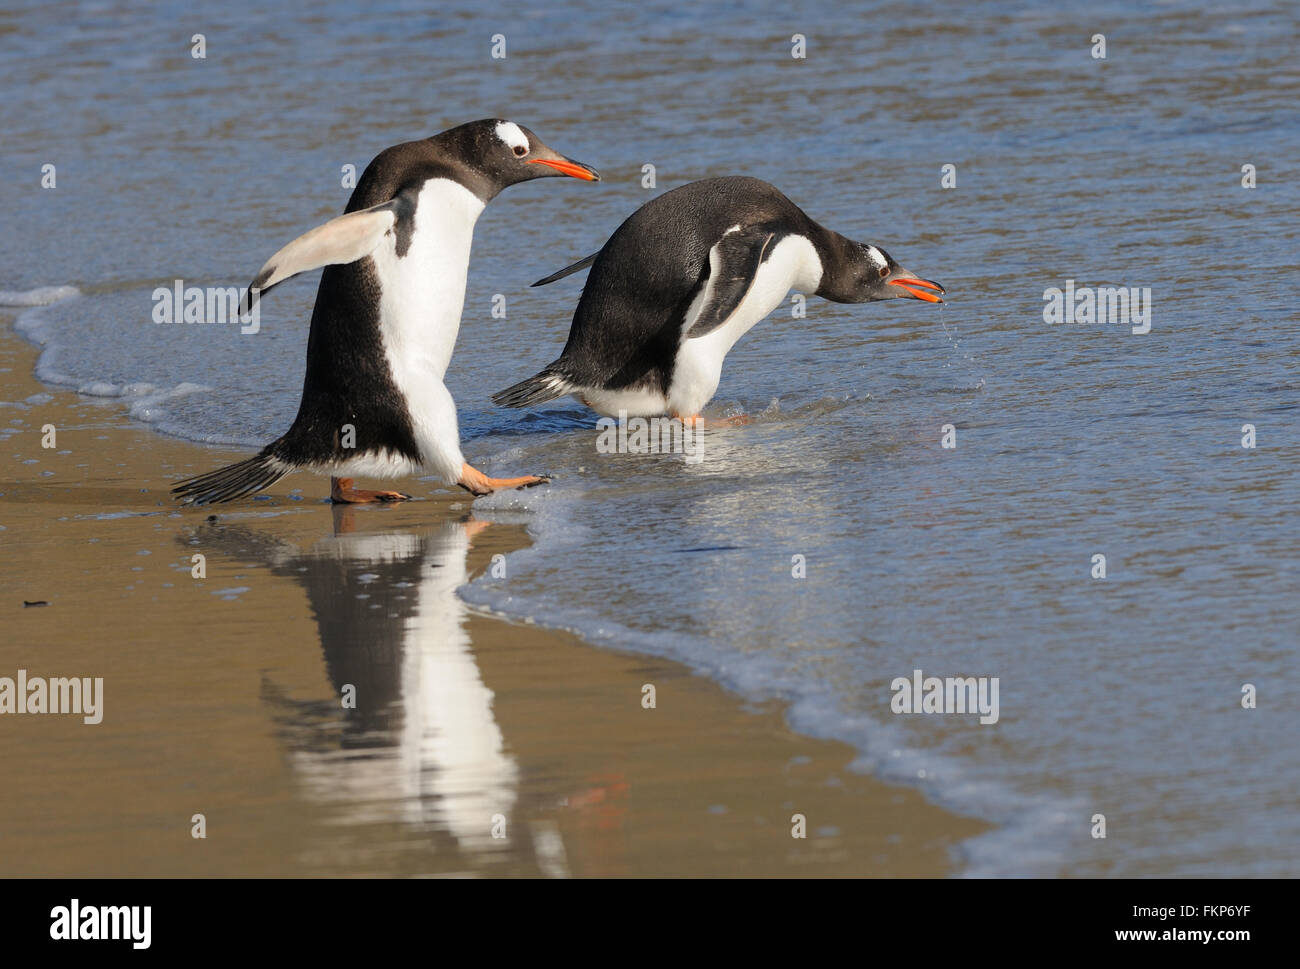 Two Long-tailed gentoo penguin  (Pygoscelis papua) enter the sea near their nesting colony on Saunders Island. Falkland - Stock Image